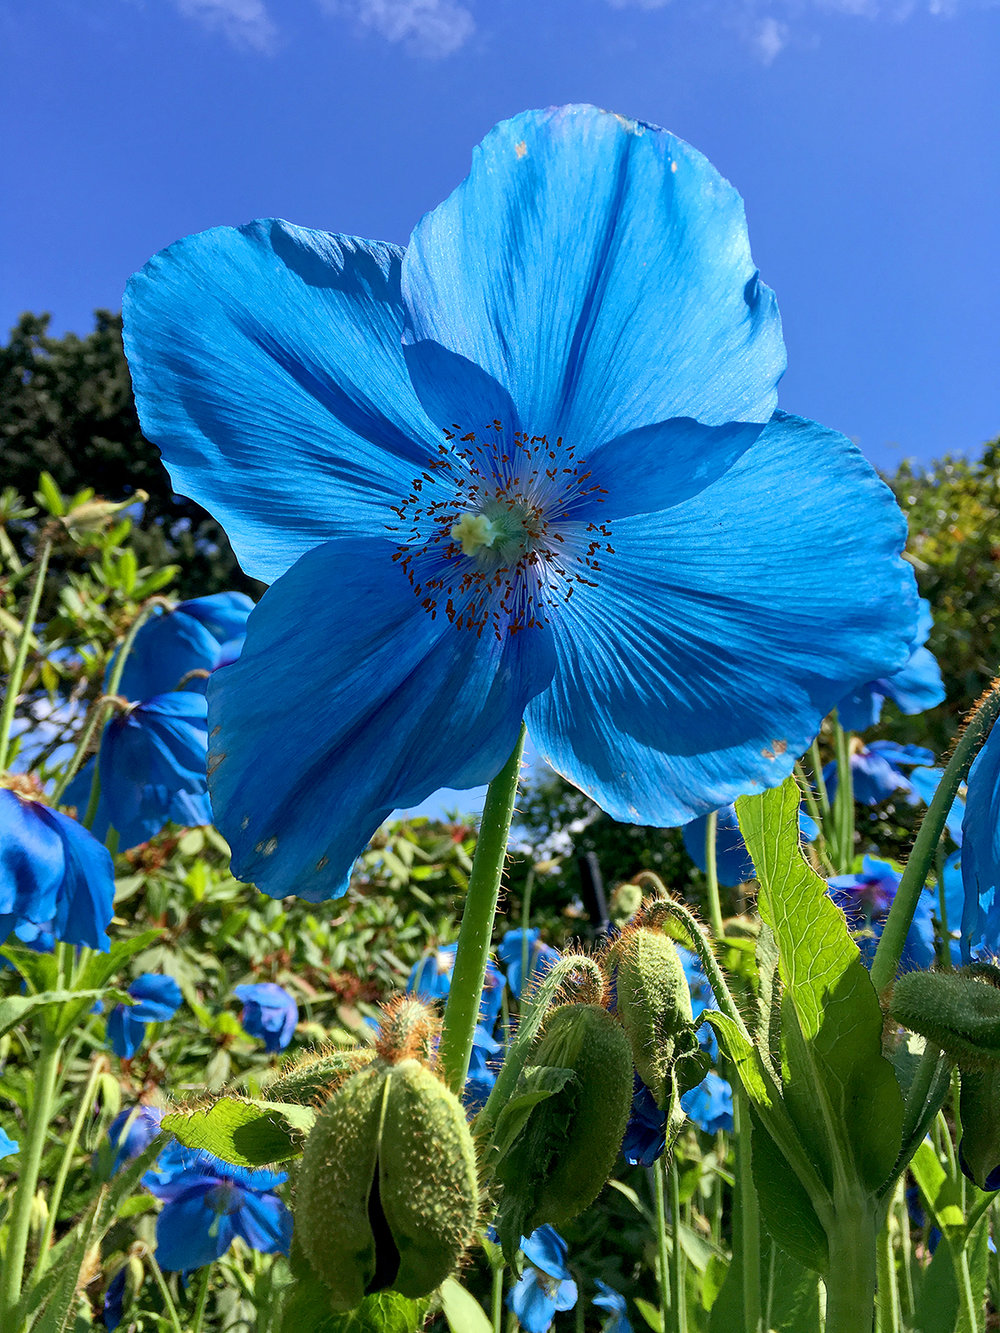 Meconopsis 'Slieve Donard' at Royal Botanic Garden Edinburgh